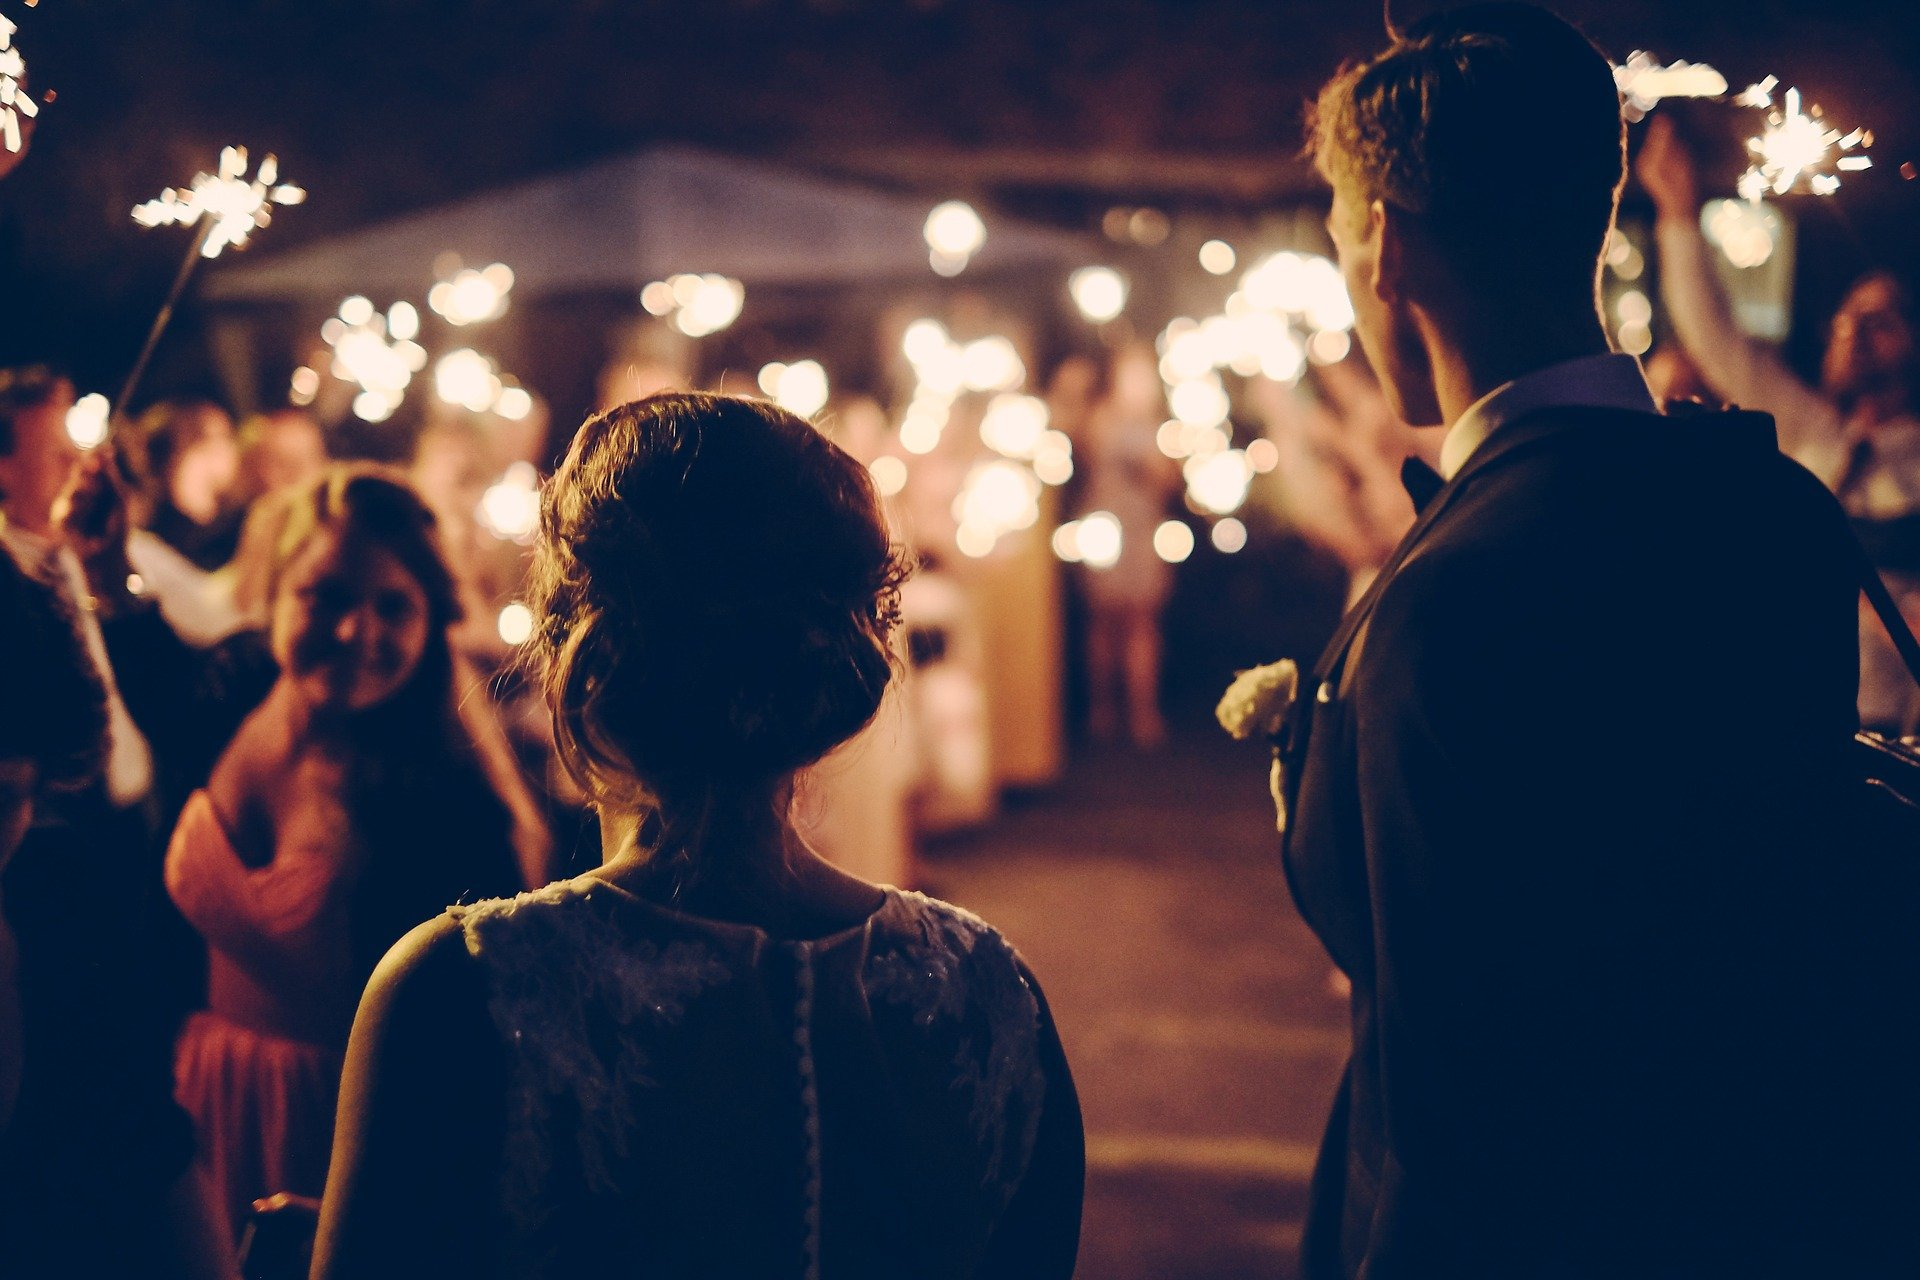 Man and woman looking on at wedding celebration. | Source: Pixabay